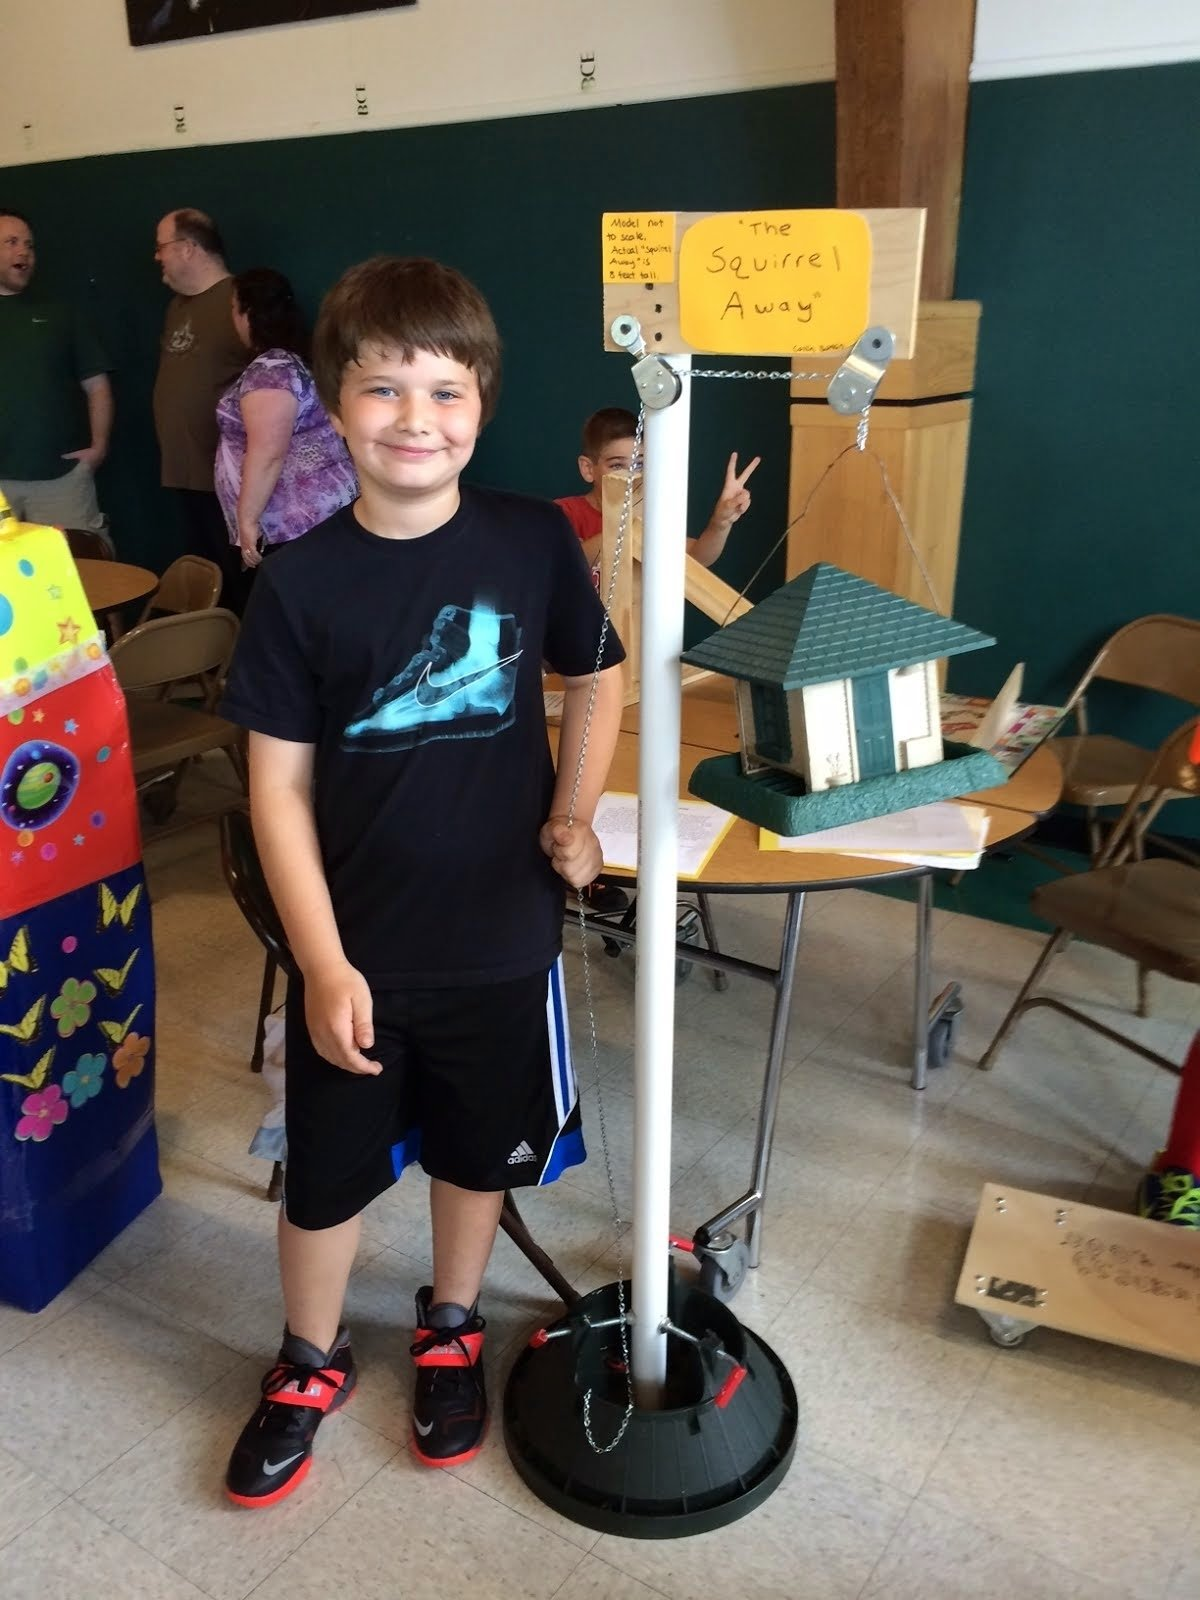 10 Most Popular 3Rd Grade Invention Project Ideas pine glen elementary school principals blog grade 4 invention 2020